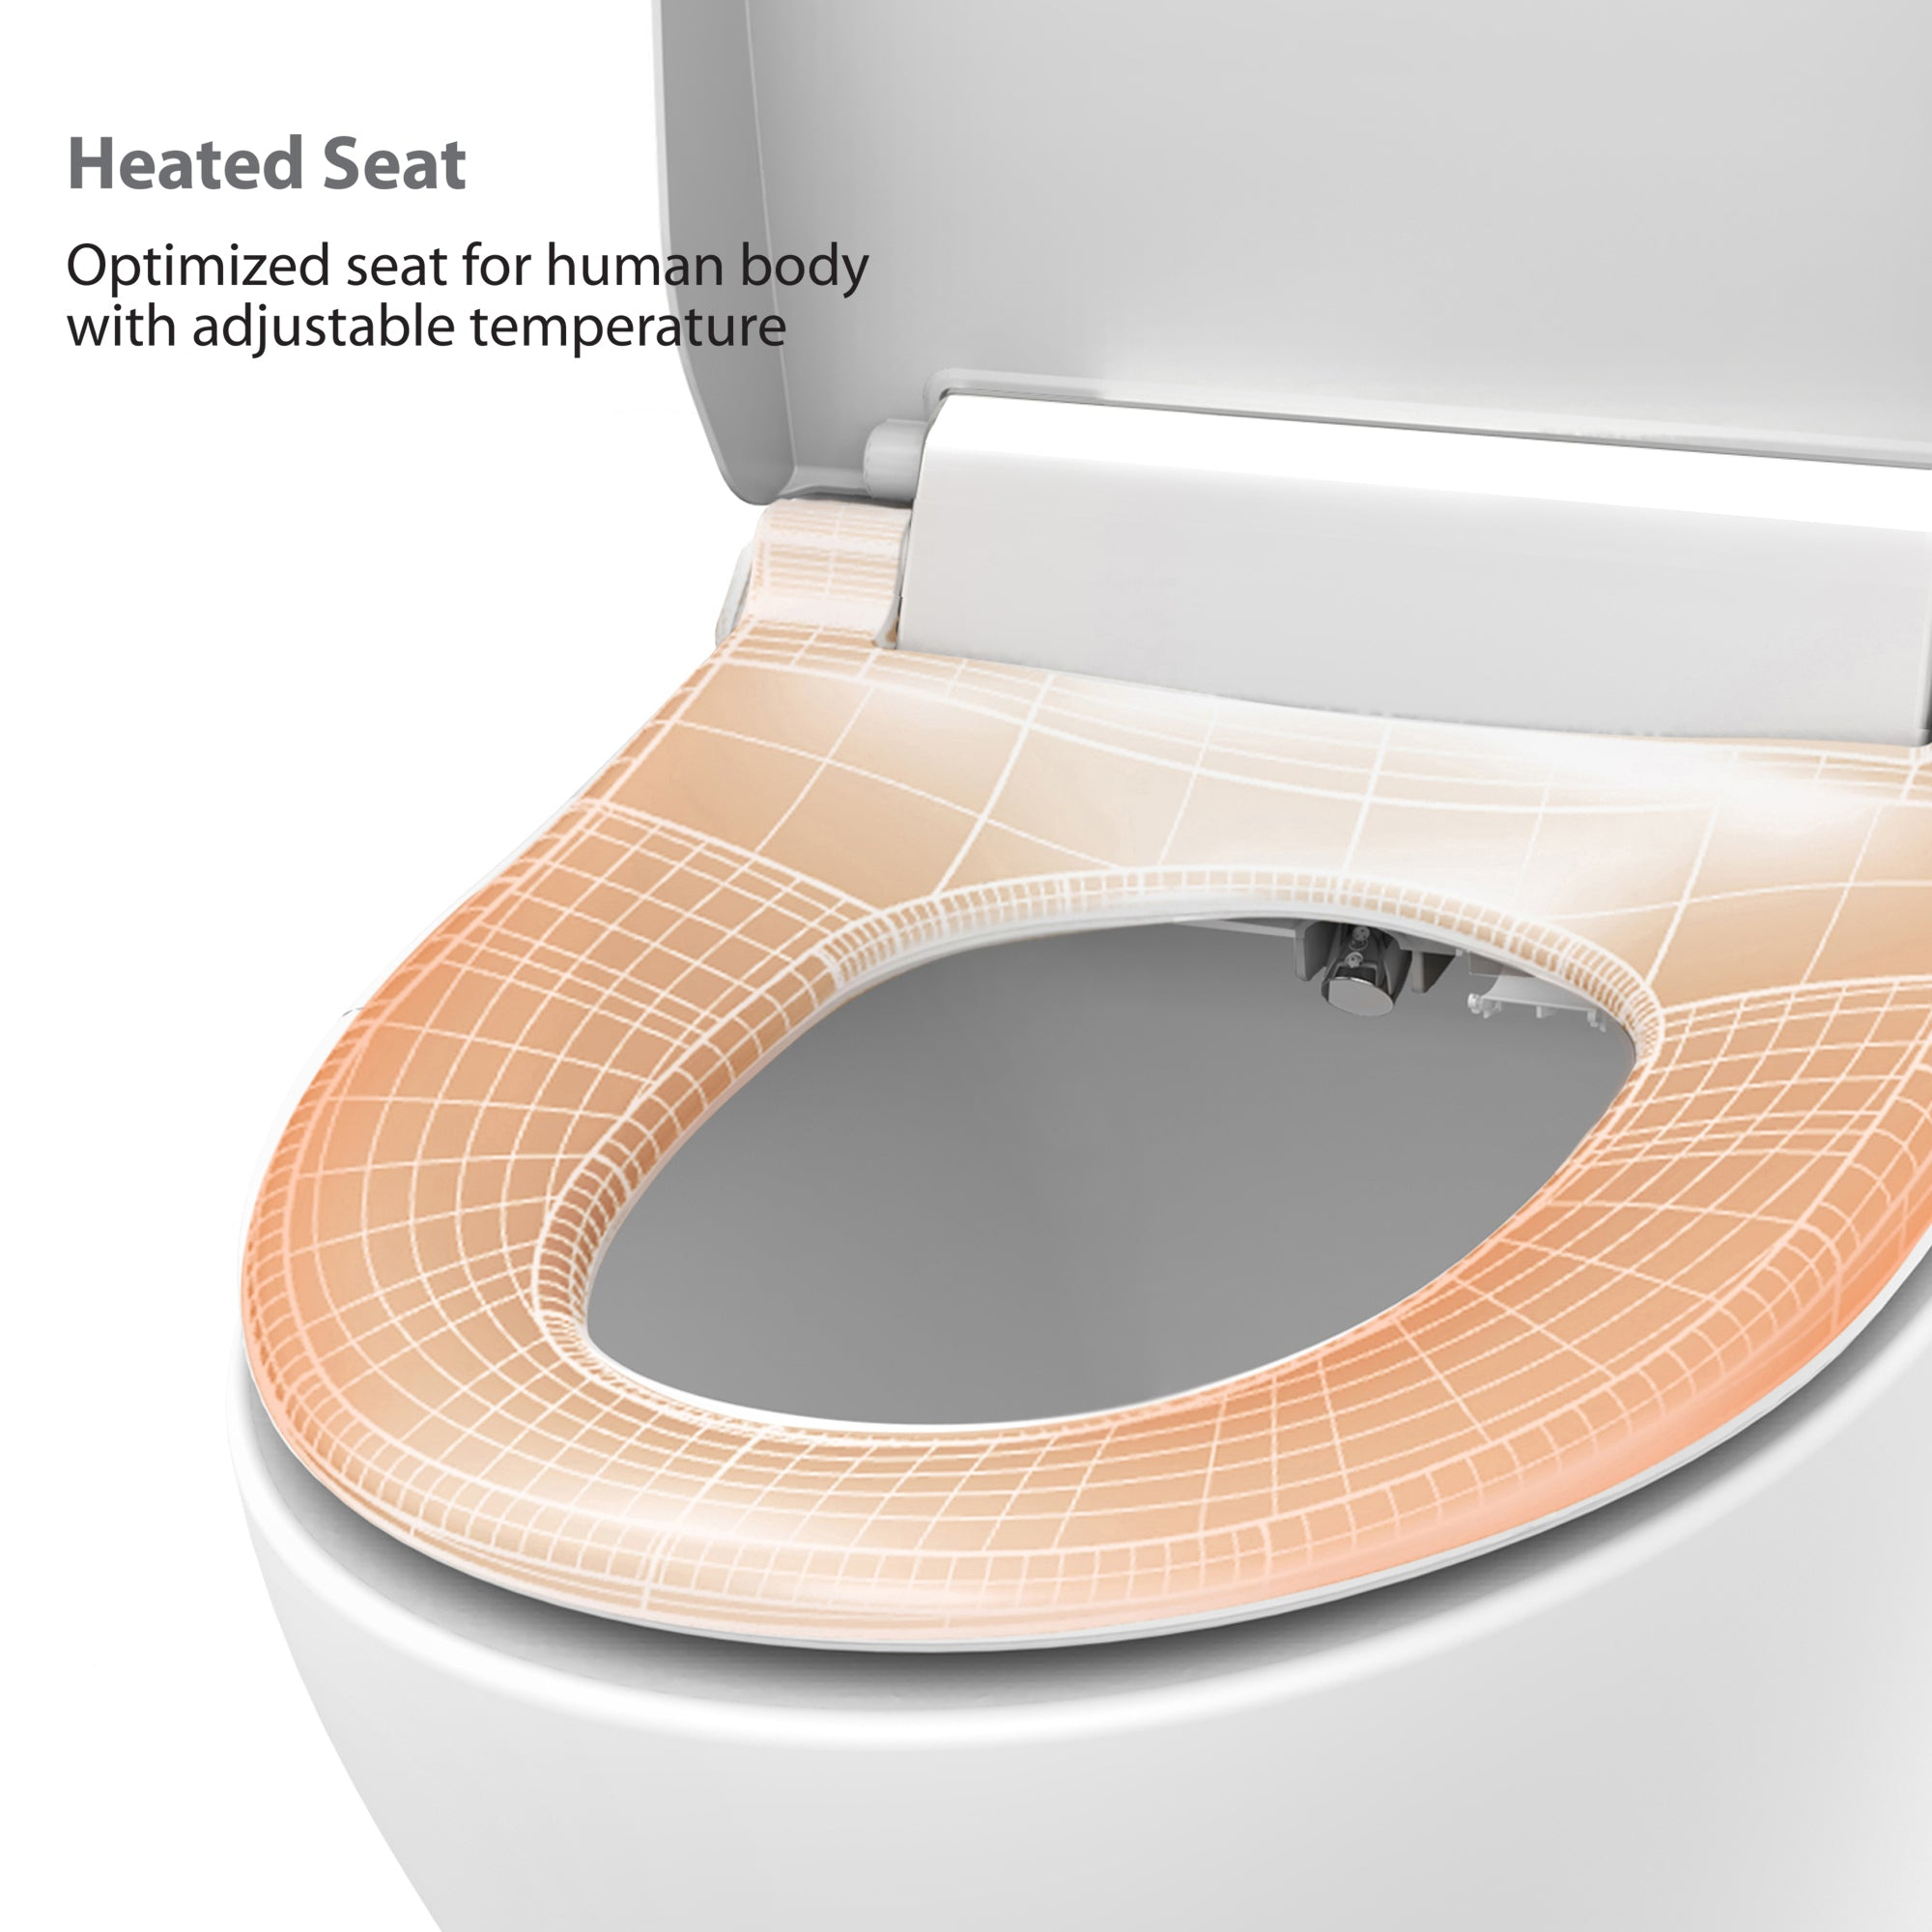 VB-6000 Heated Seat